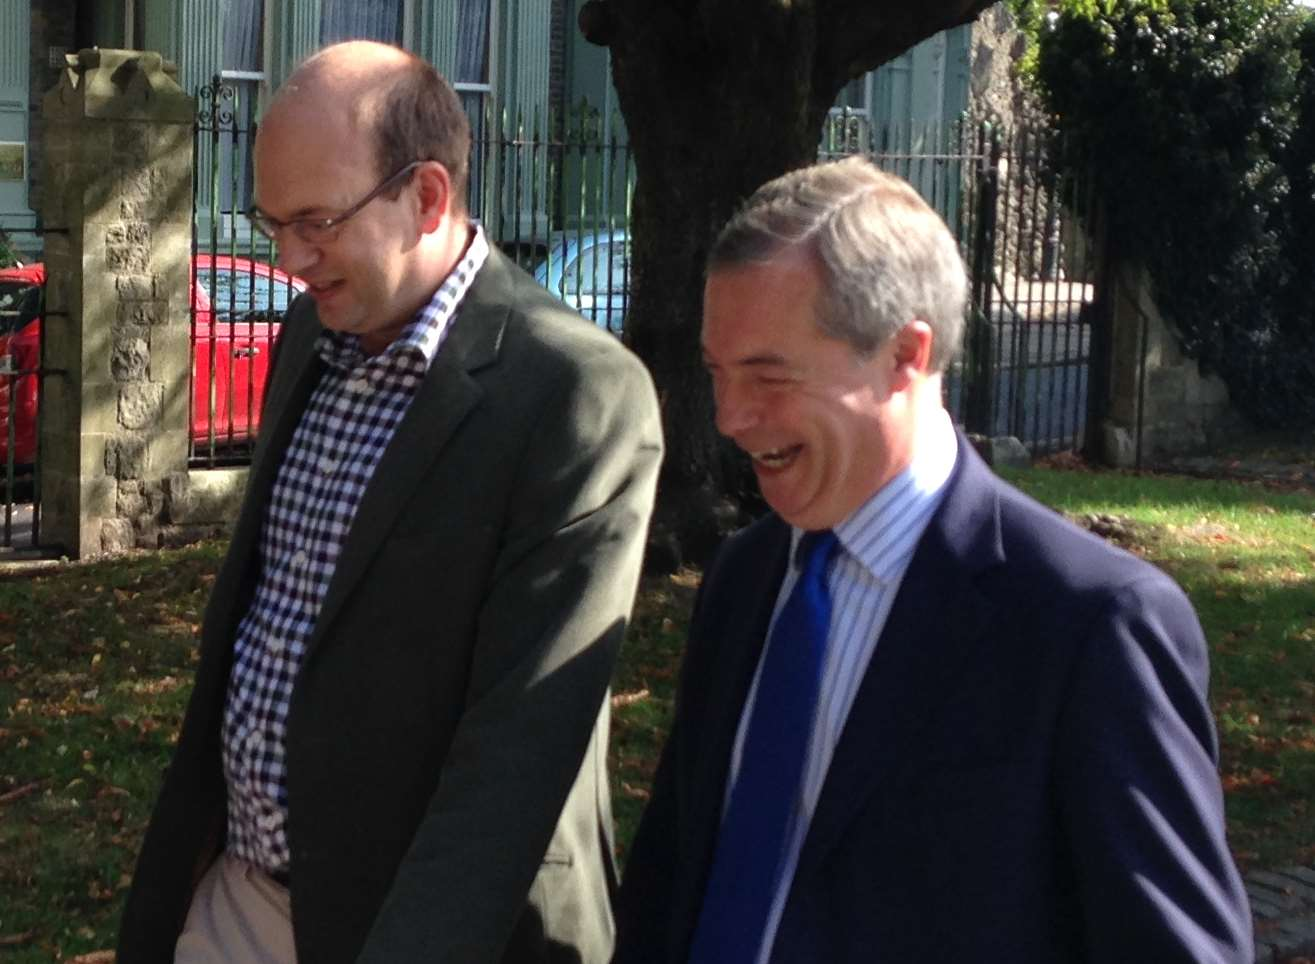 Mark Reckless with Nigel Farage in the Rochester Castle grounds